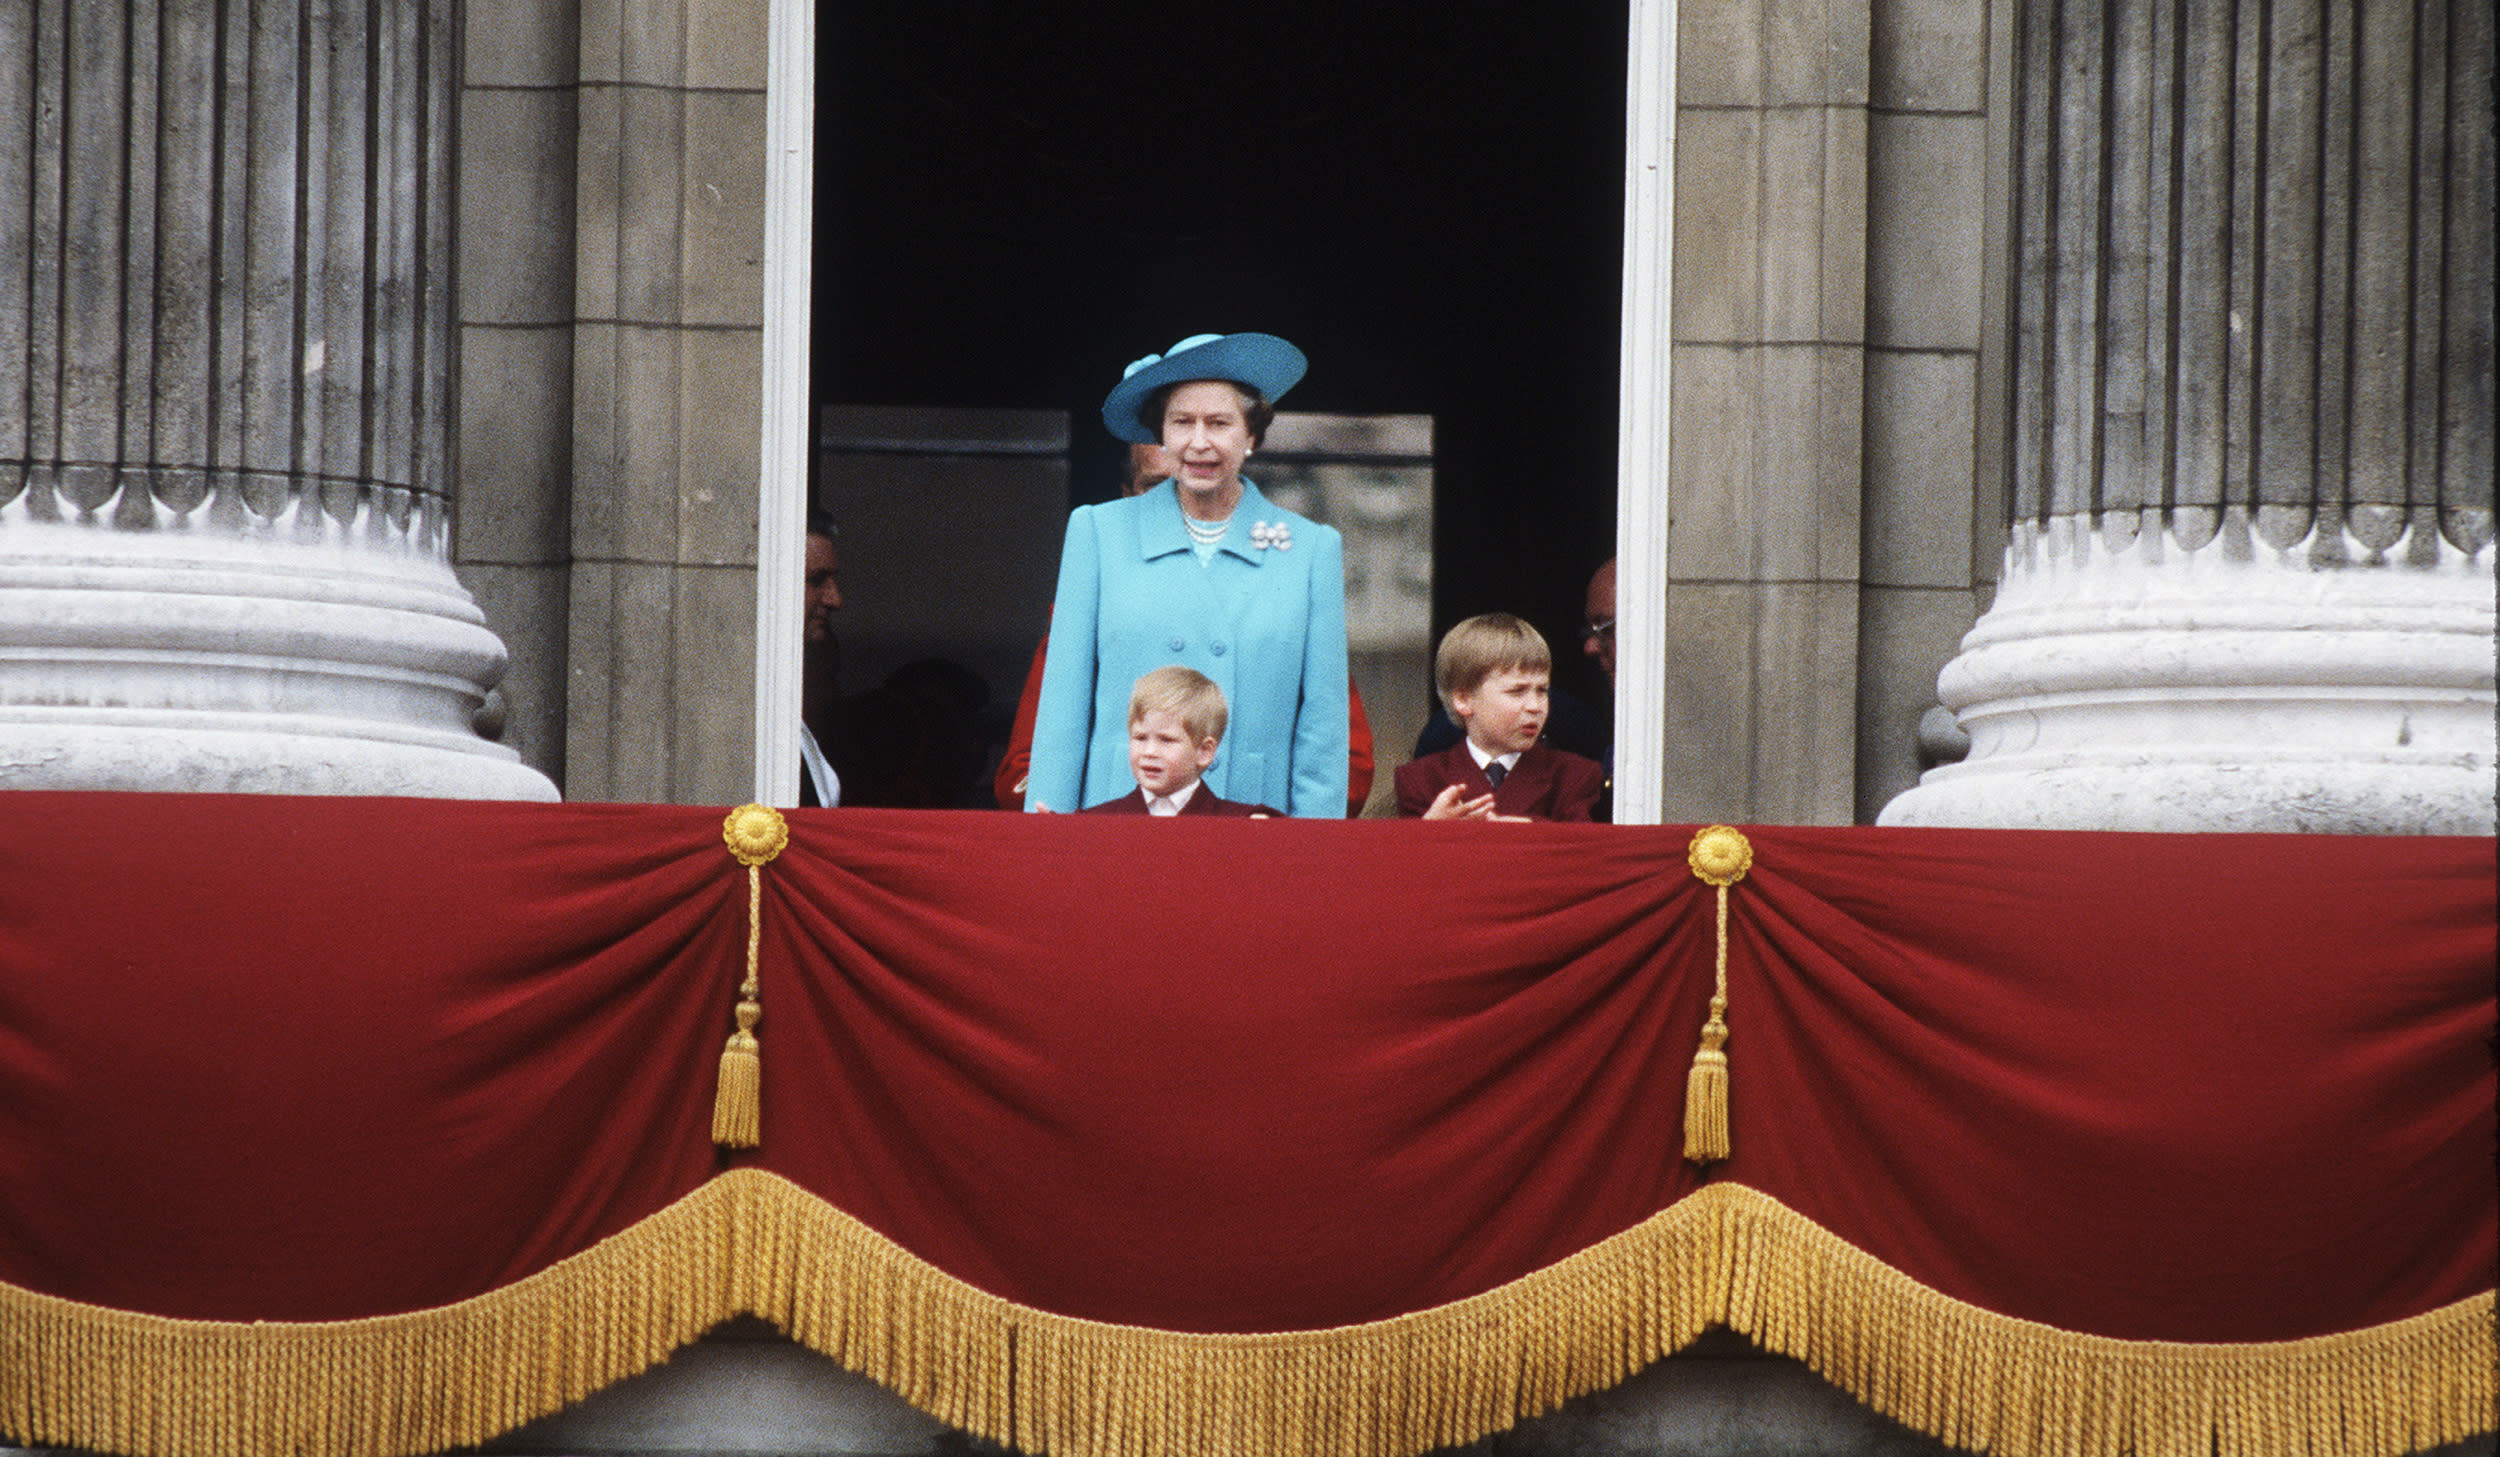 LONDON:  Queen Elizabeth II with Prince William and Prince Harry during the Tropping of the Colour ceremony at Buckingham Palace in 1988 in London, England. (Photo by Anwar Hussein/Getty Images)